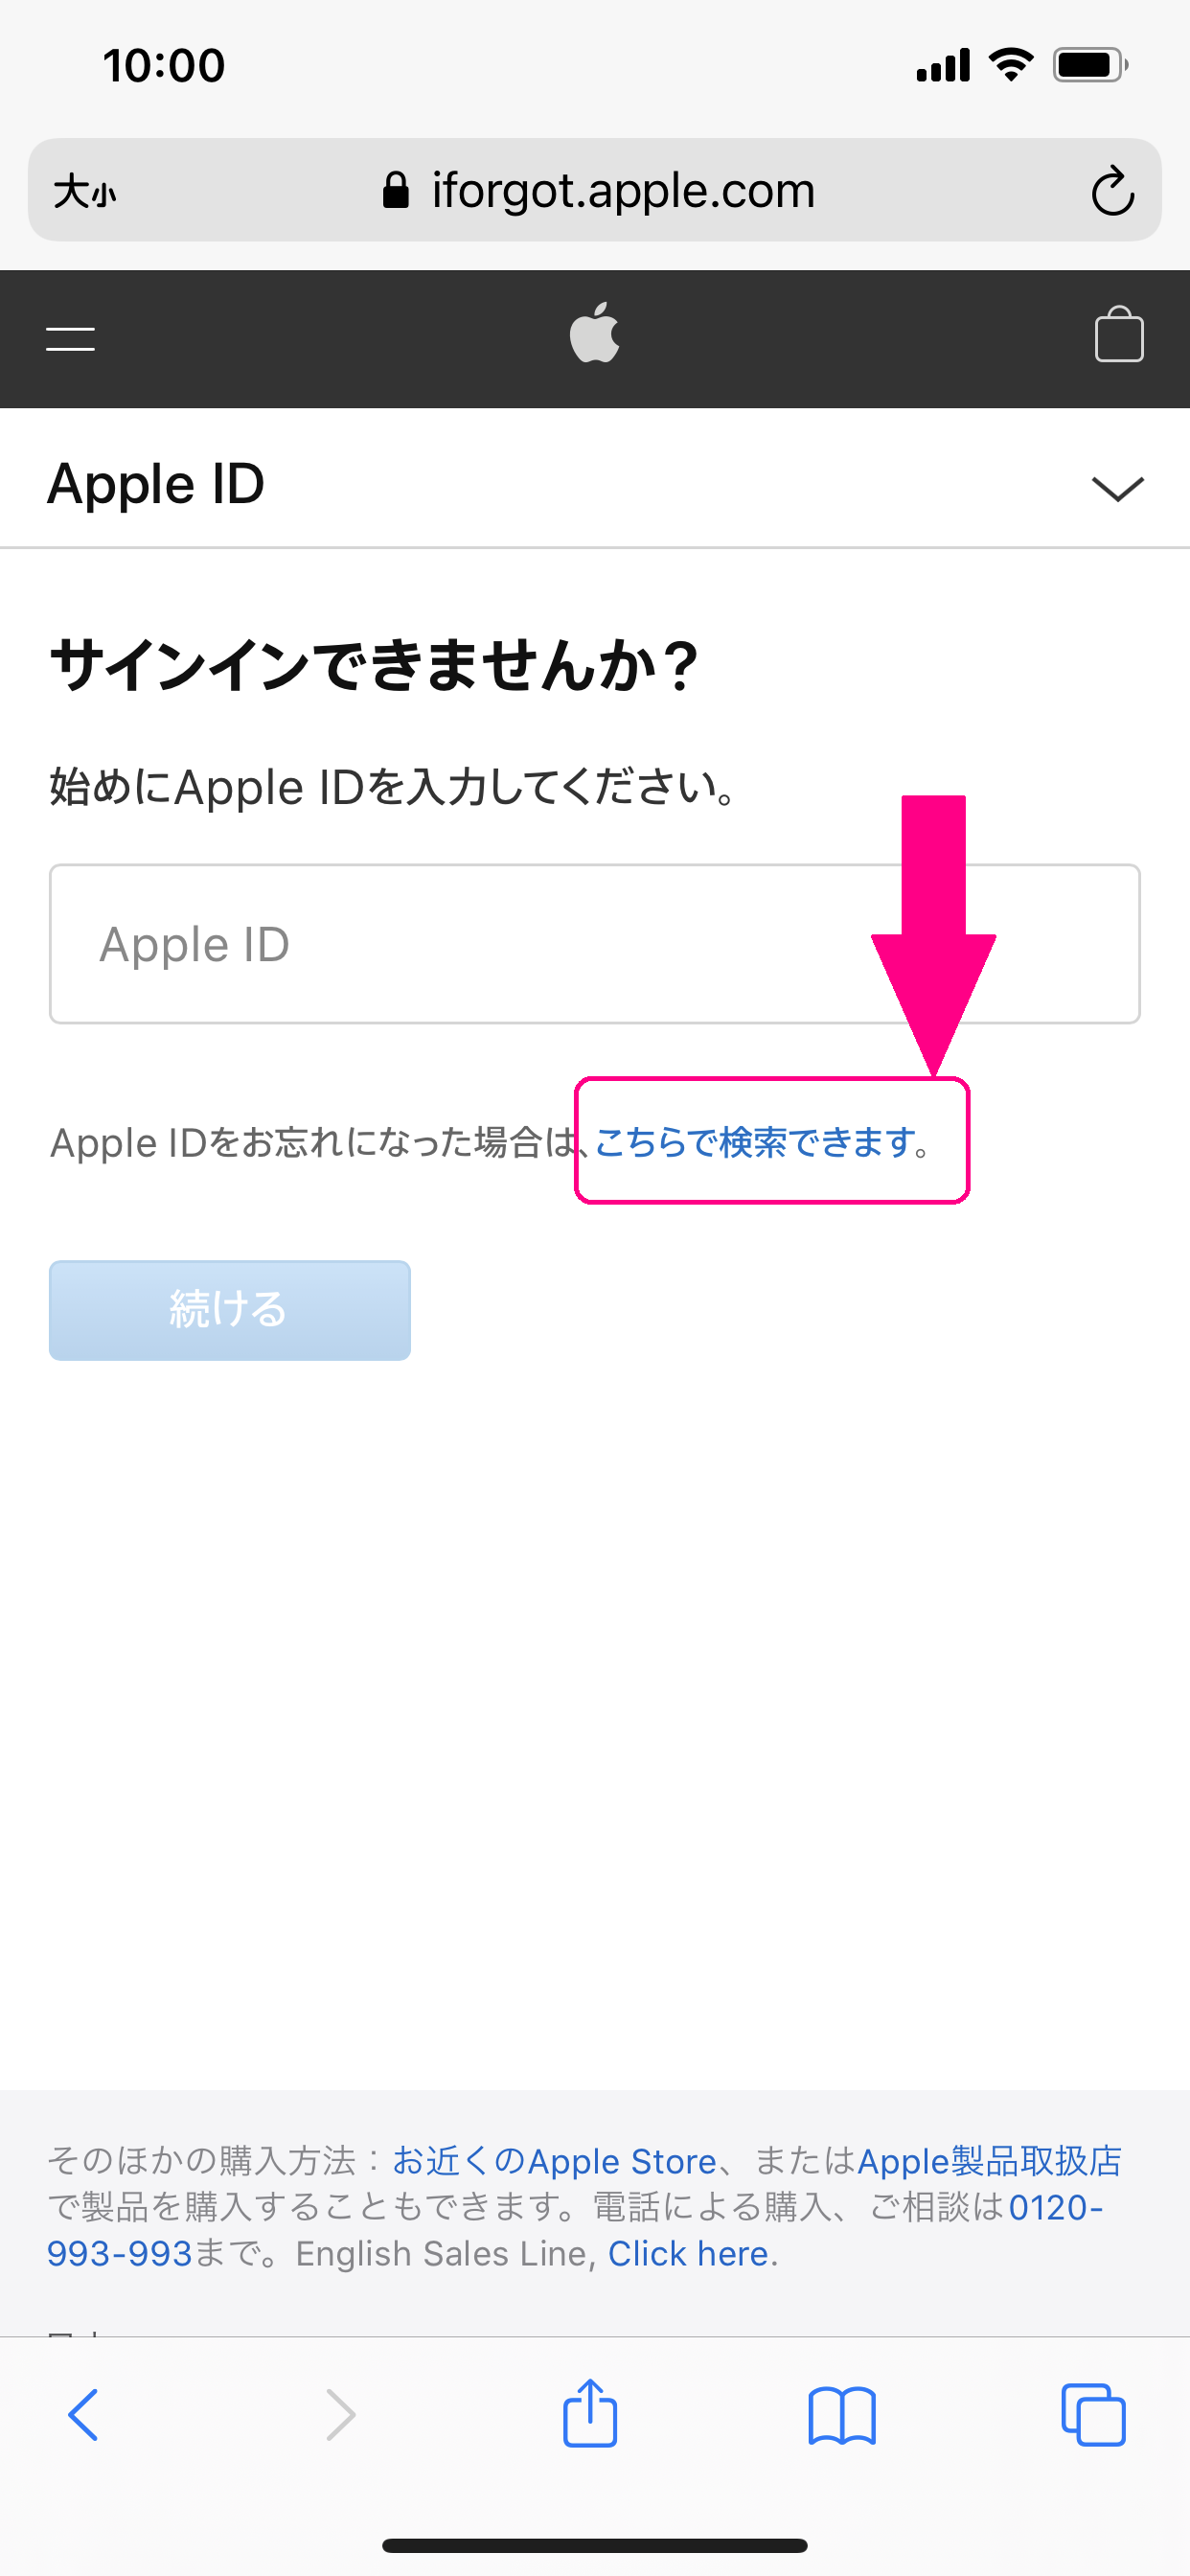 Apple ID検索